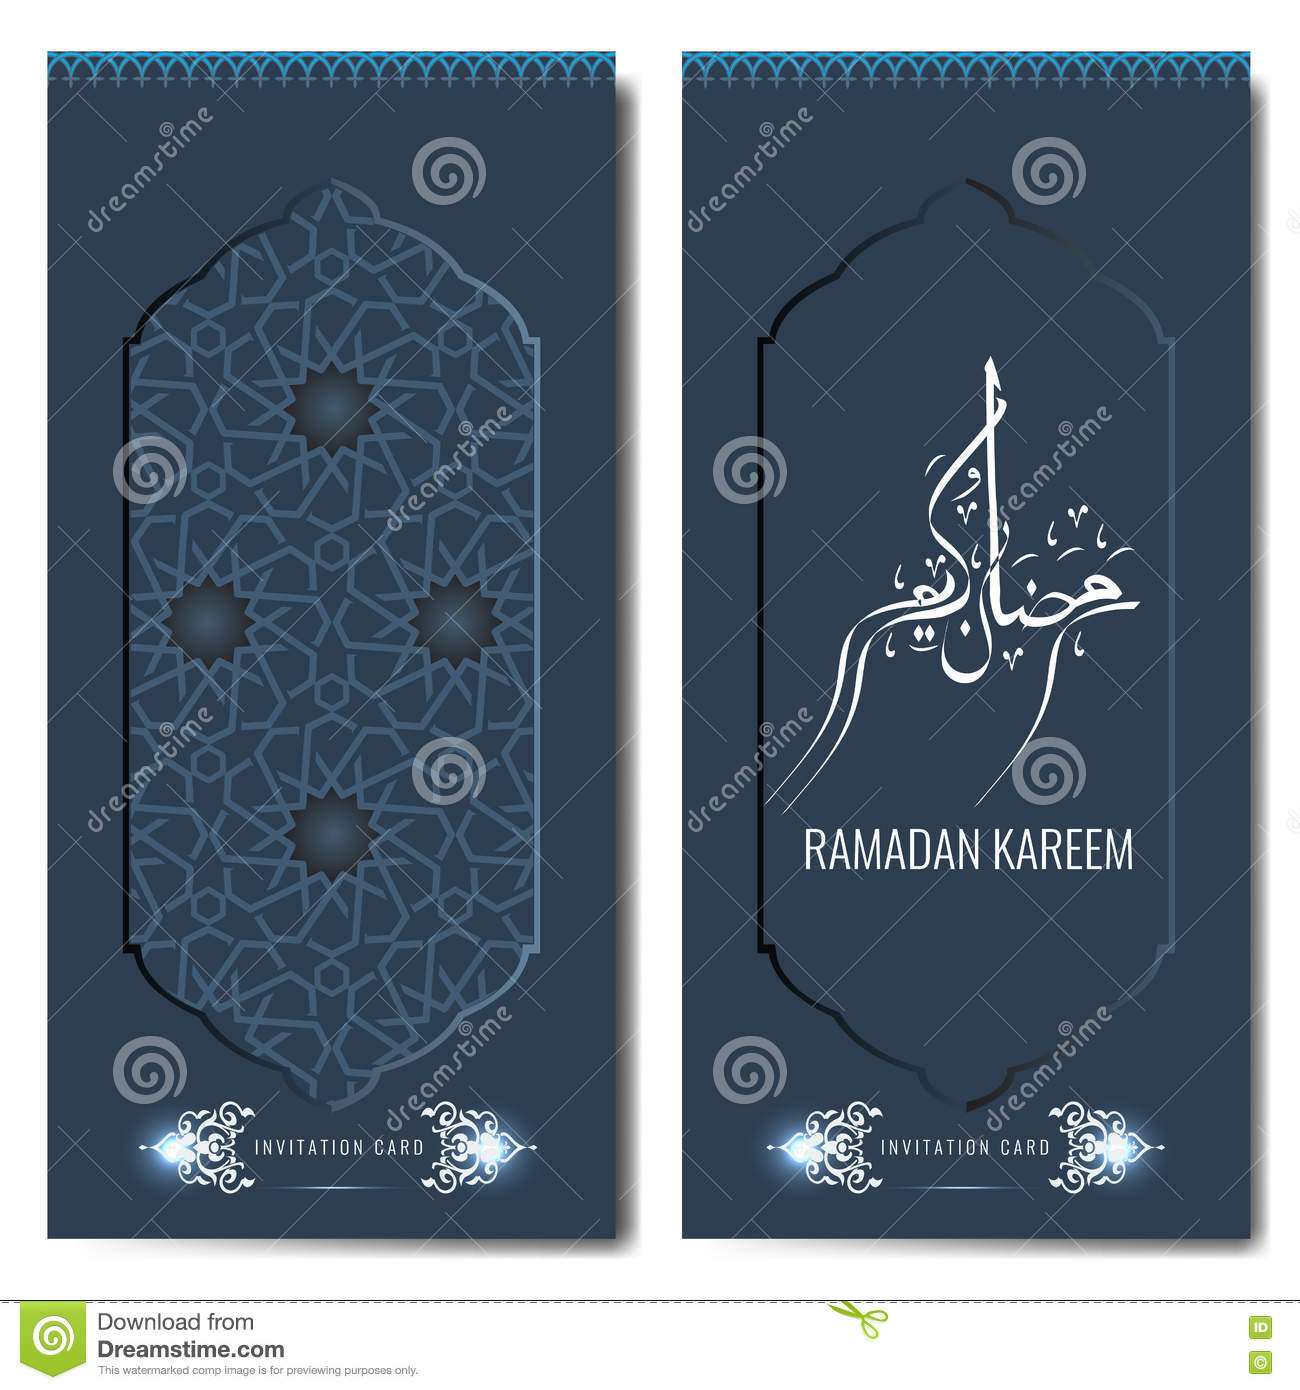 Ramadan Kareem Salutation Islamique Ou Calibre De Carte D Invitation